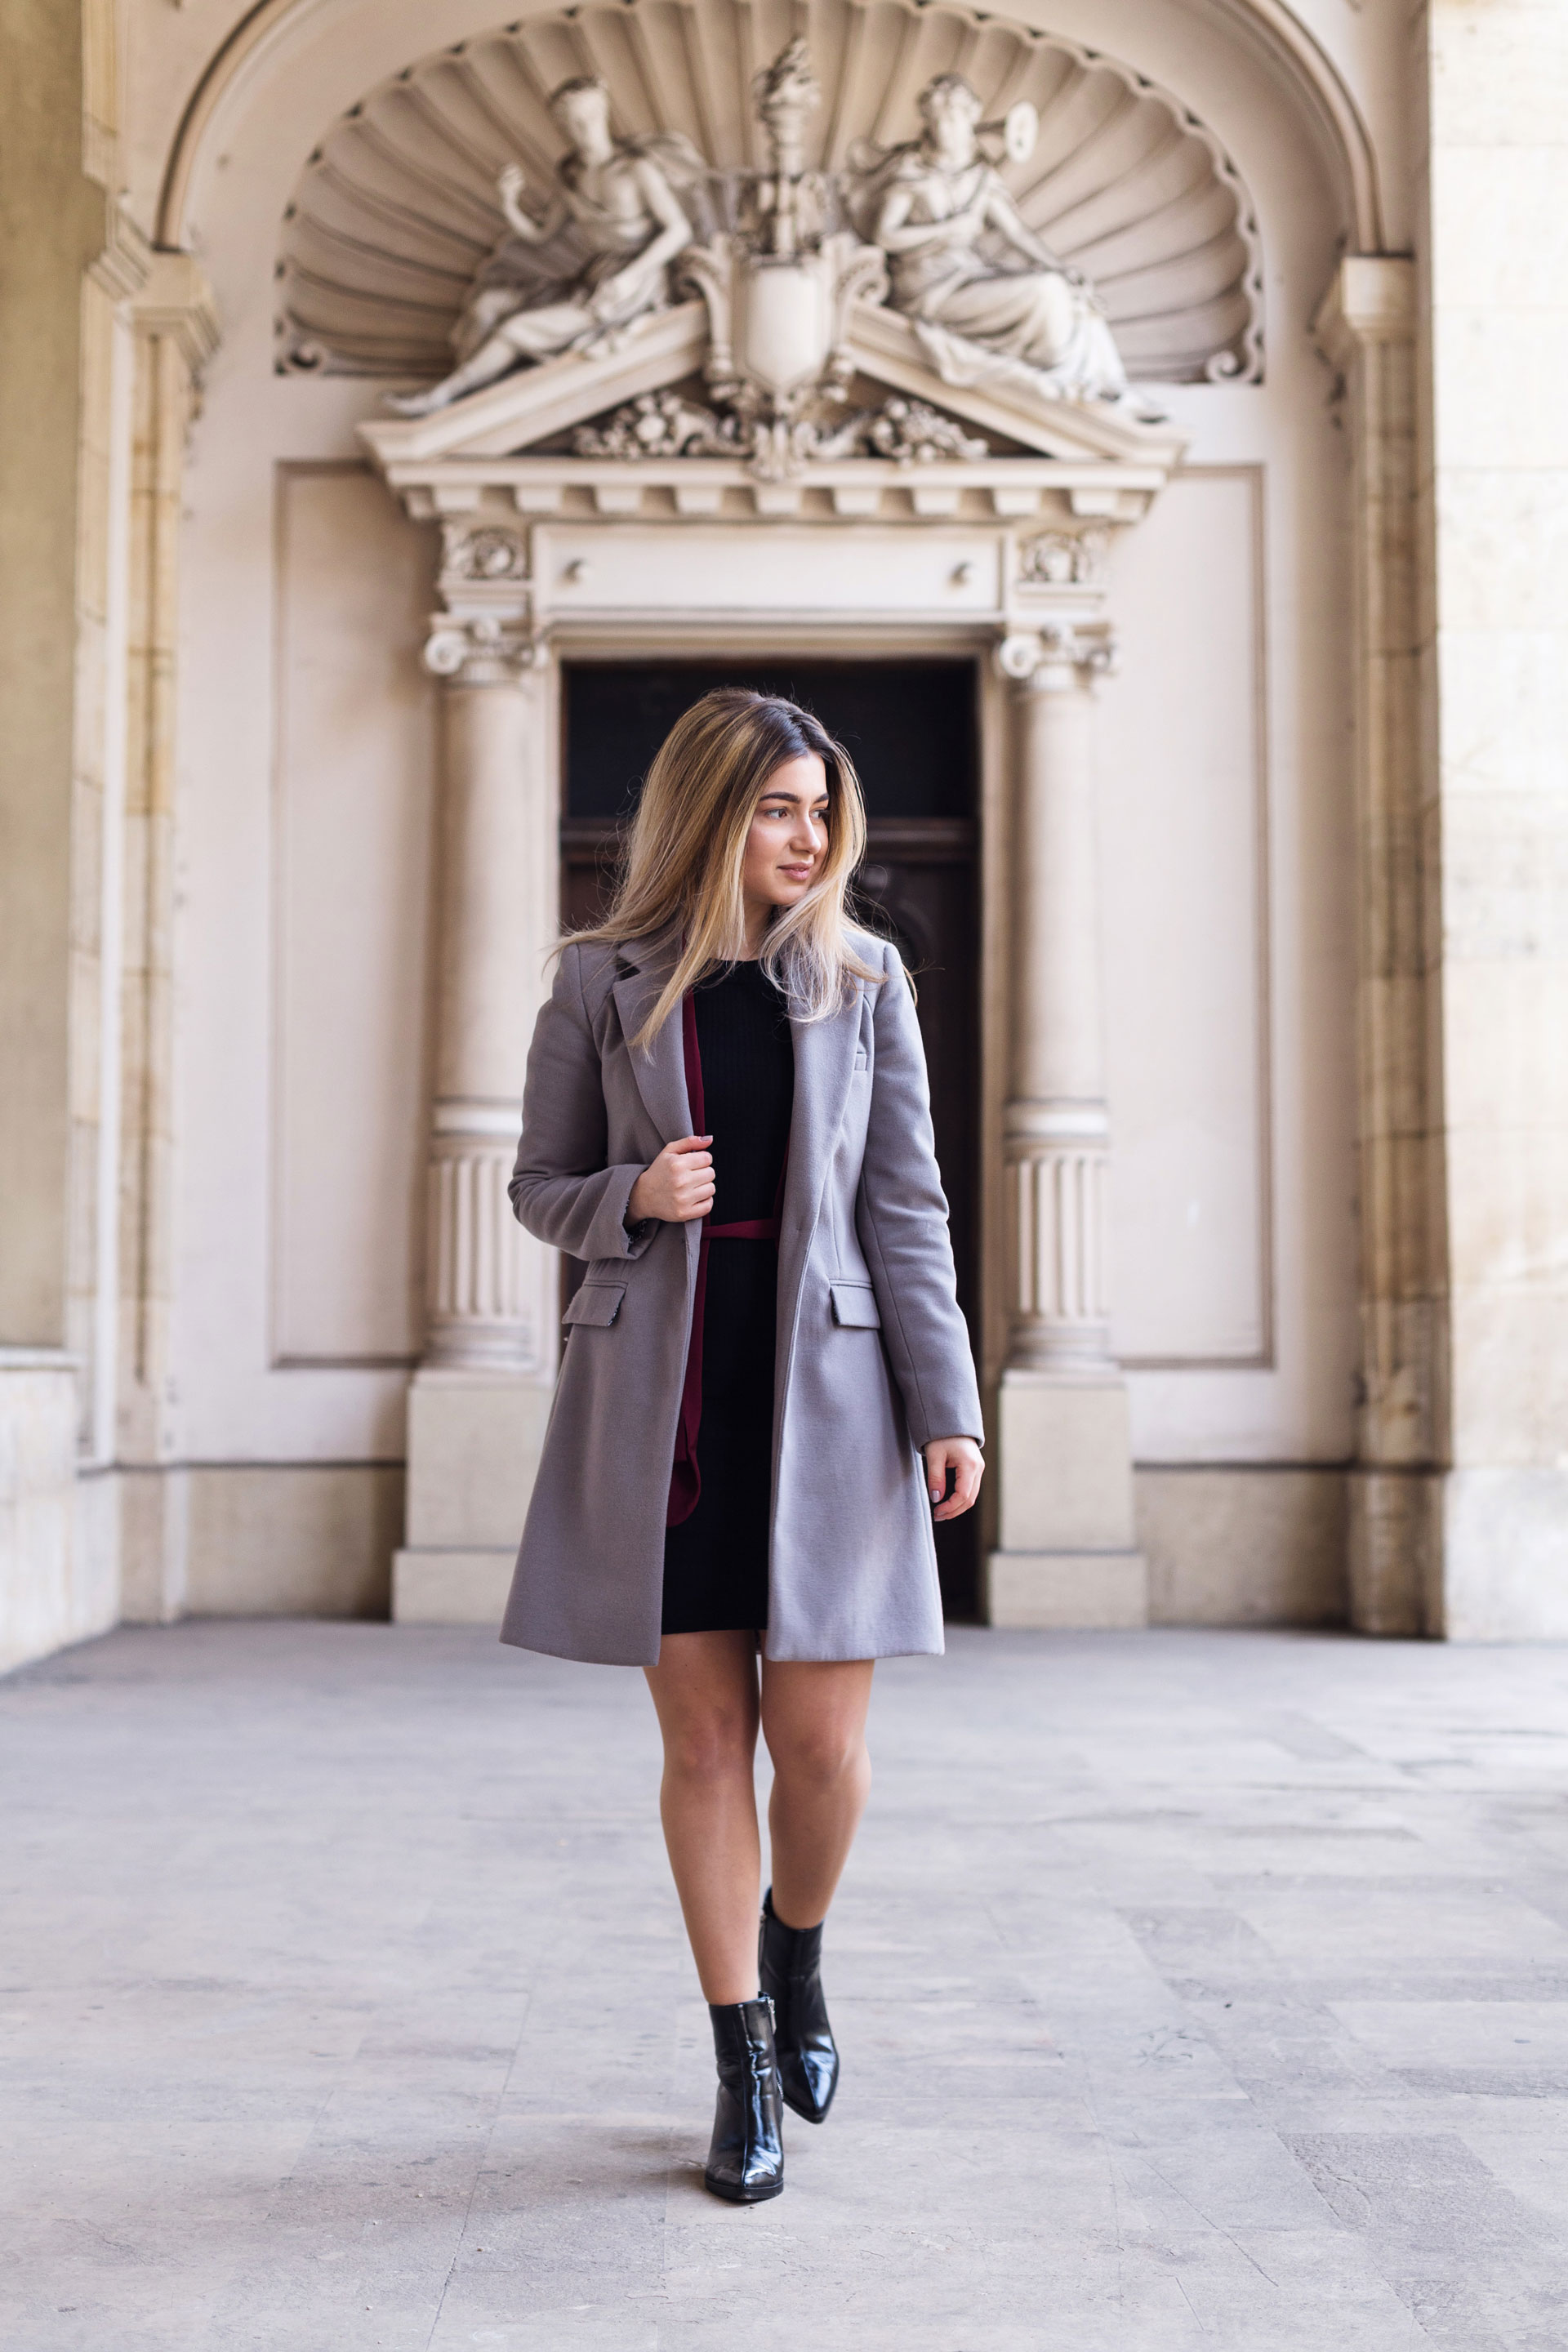 denisasimam-nakd-grey-coat-black-heels-outfit